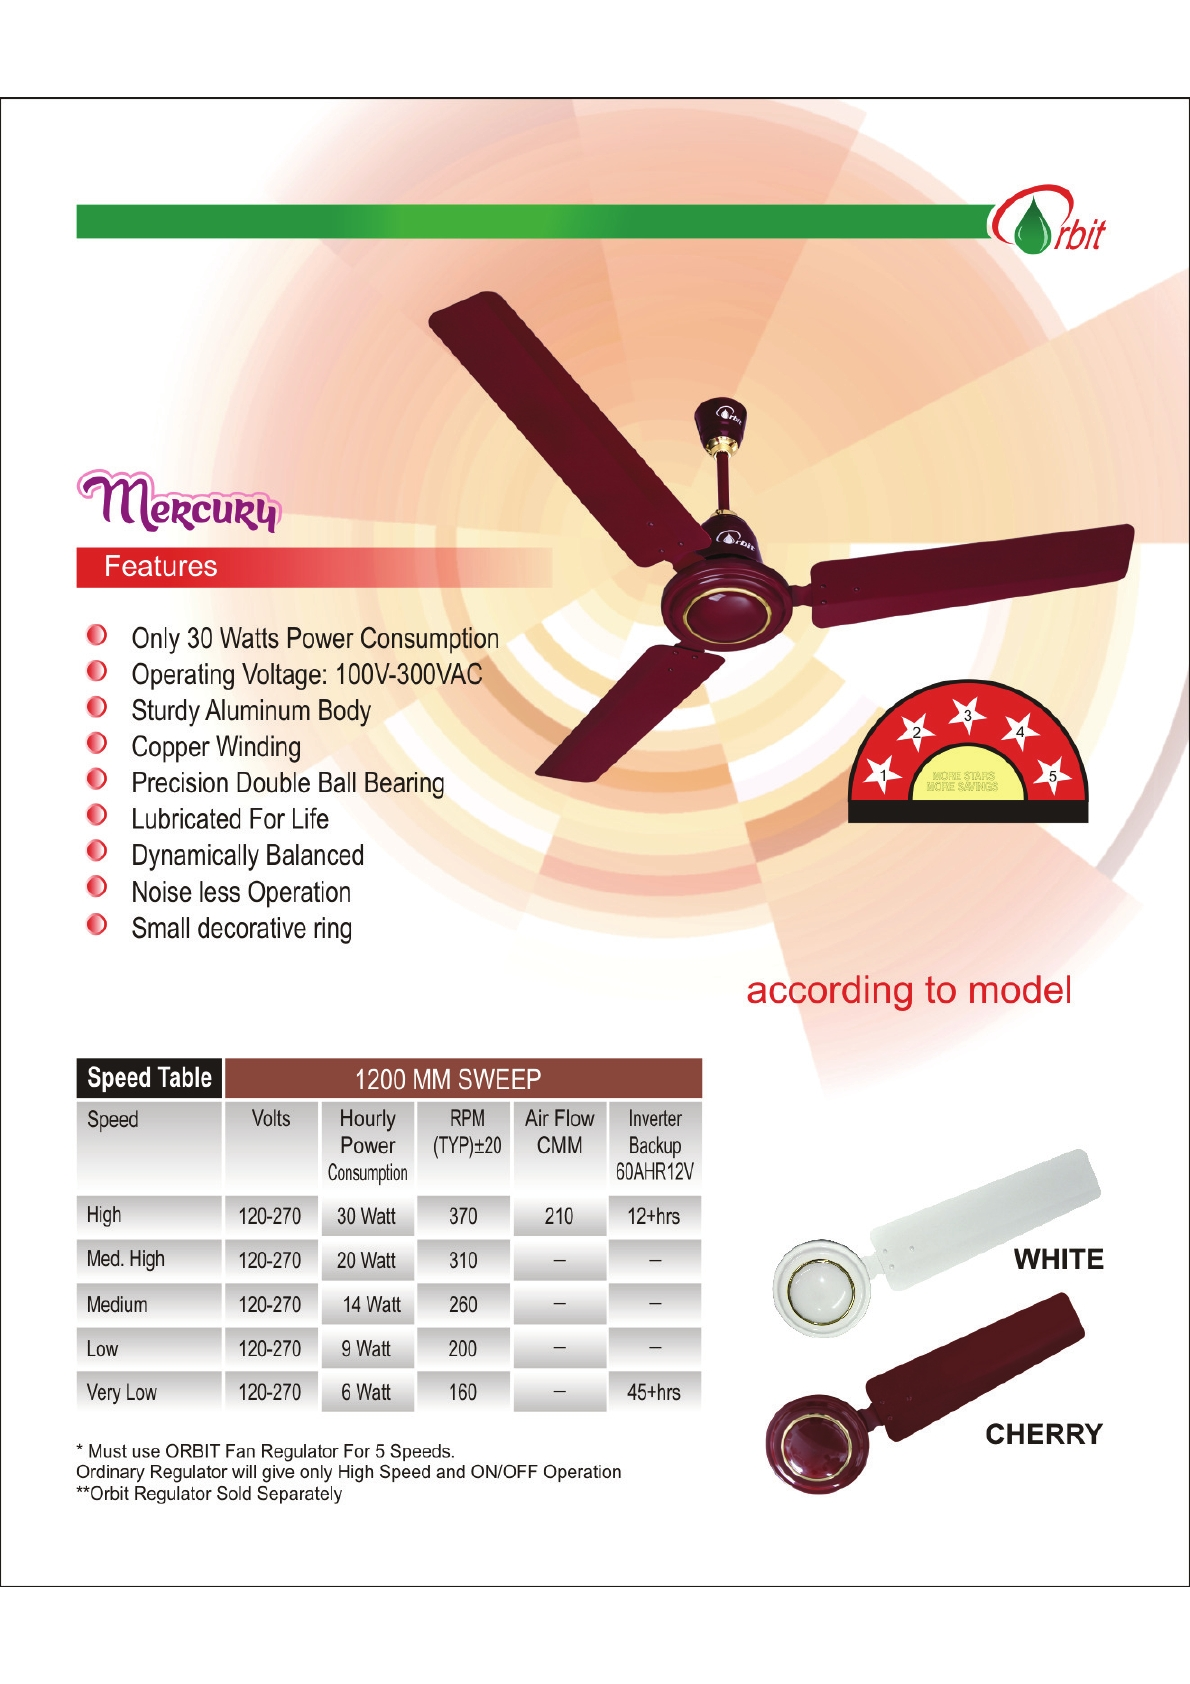 Orbit Greens India s most efficient ceiling fan